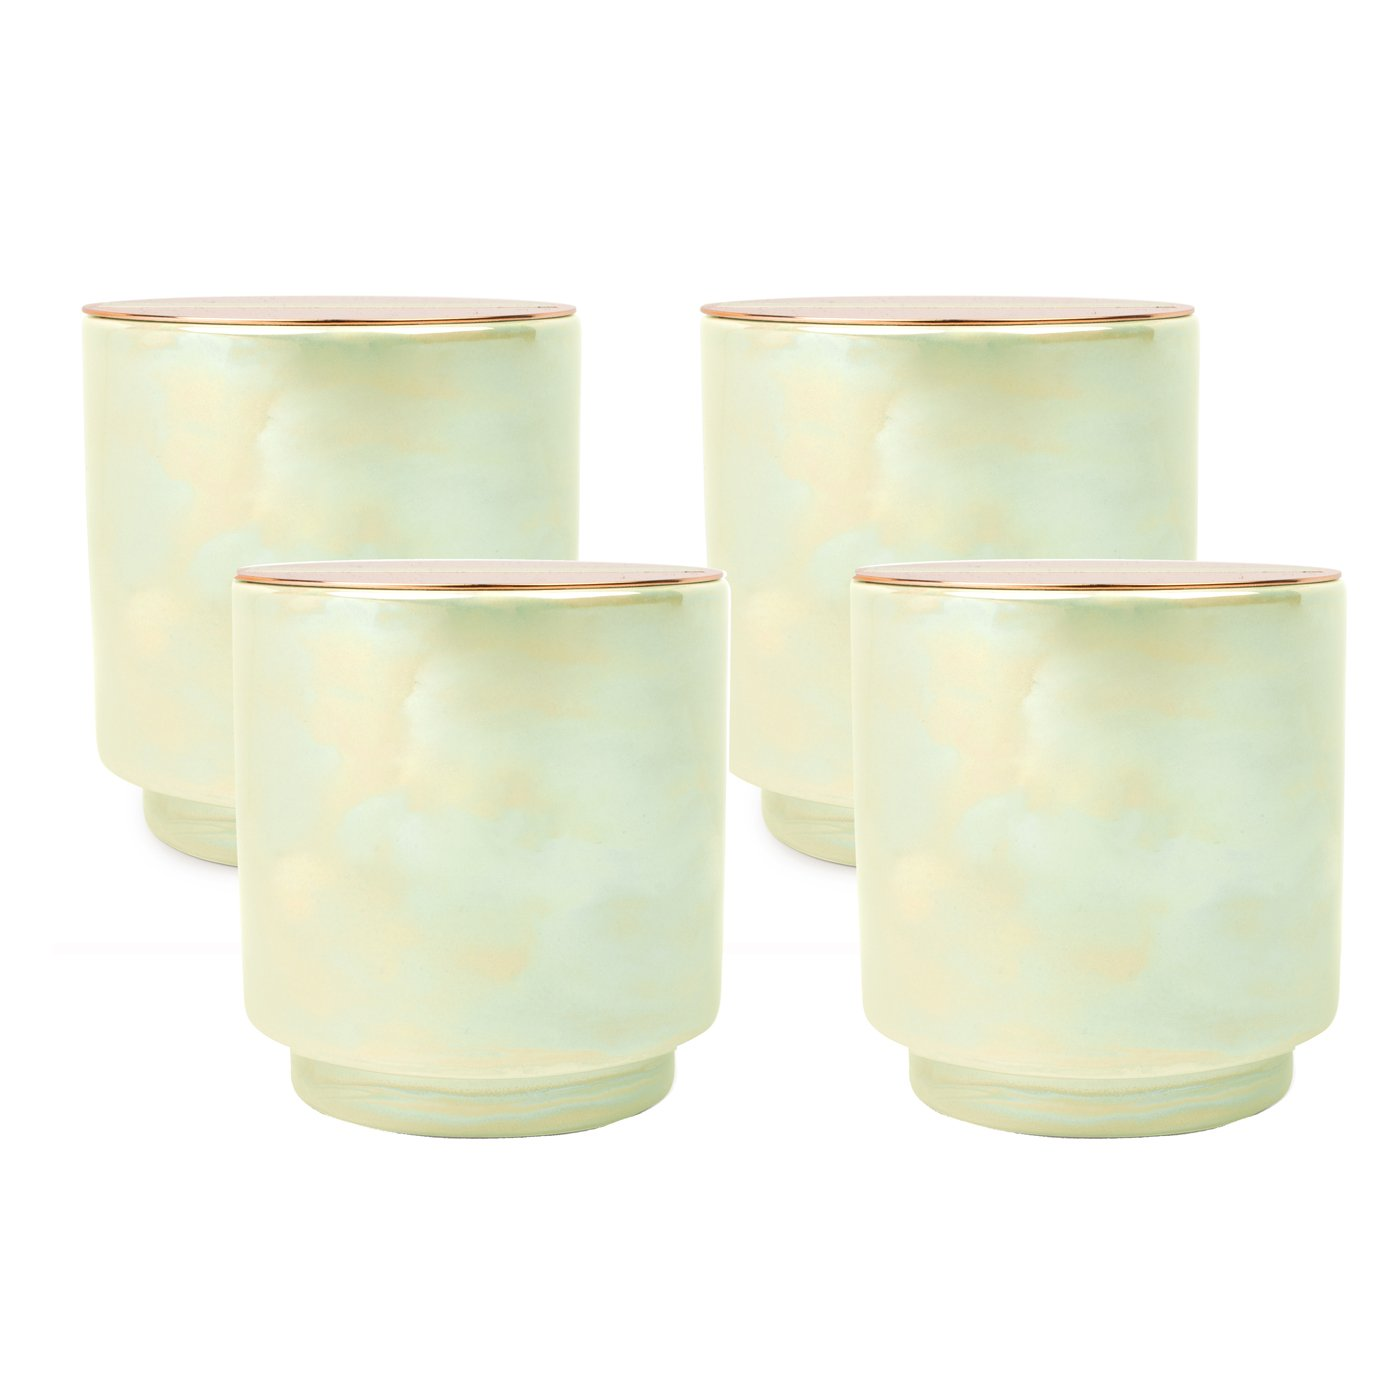 Paddywax Glow 17 Oz. Iridescent Ceramic Candle - Mint w/Copper Lid - White Woods & Mint - Pack Of 4